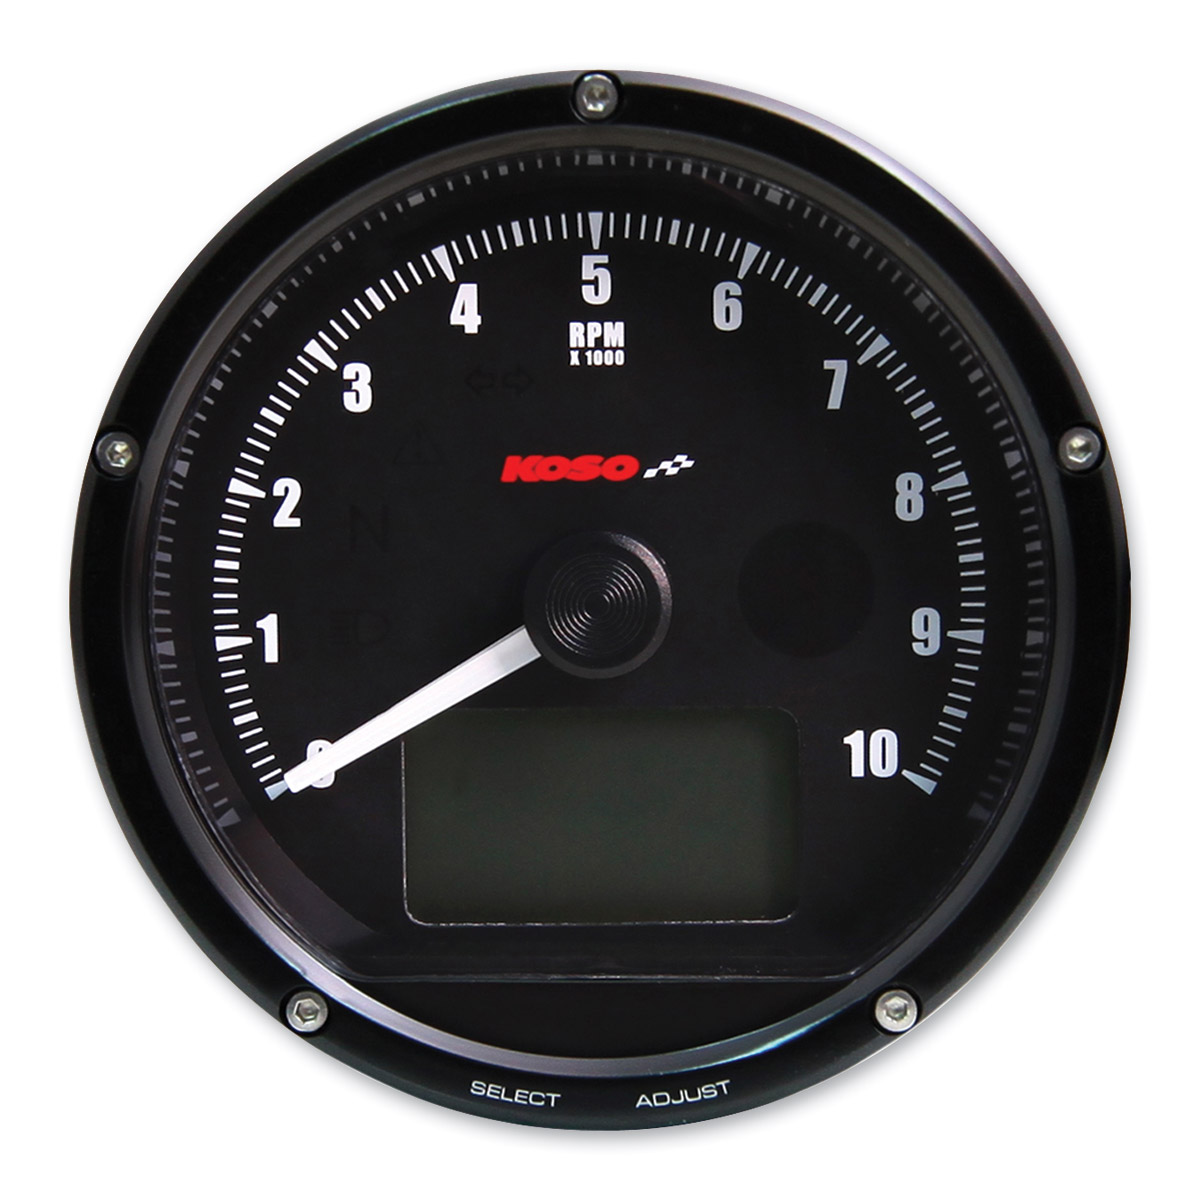 Koso T&T Electronic Speedometer/Tachometer